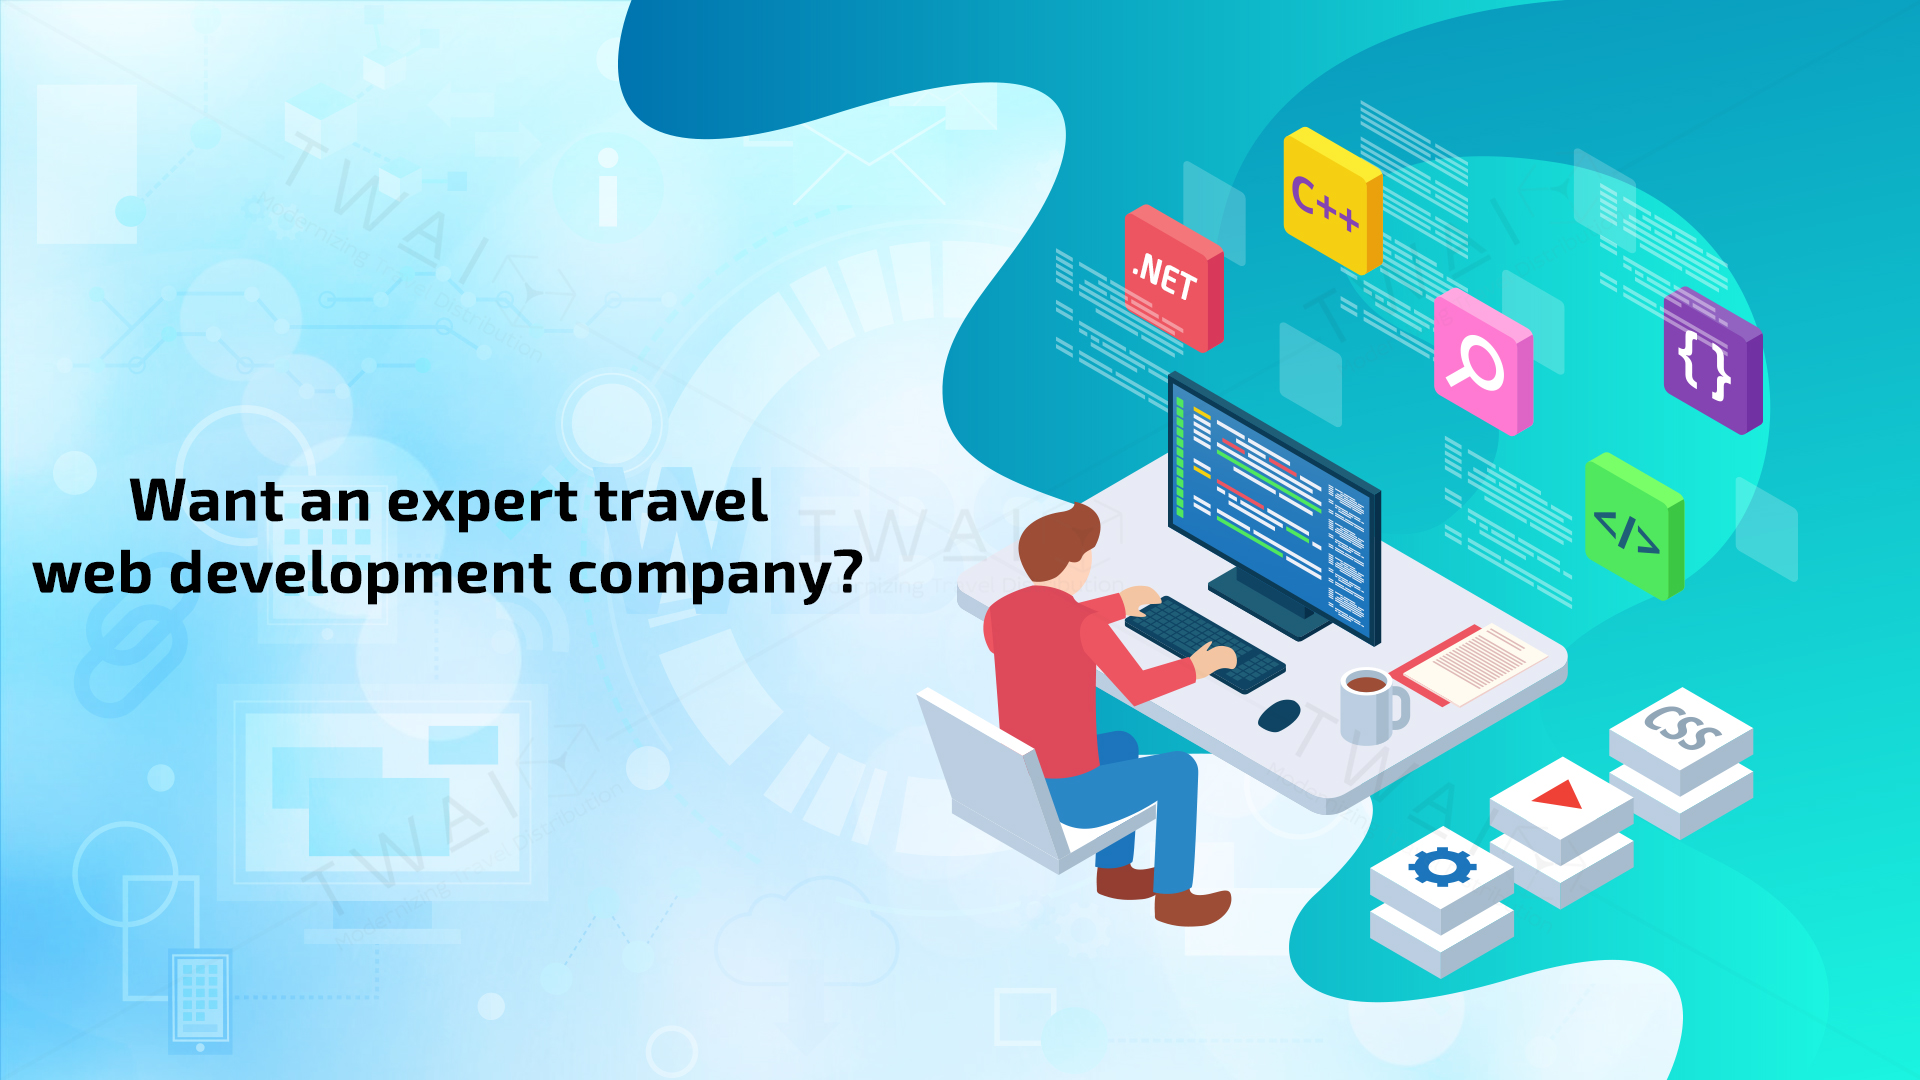 Want an expert travel web development company? Follow 5 smart tips